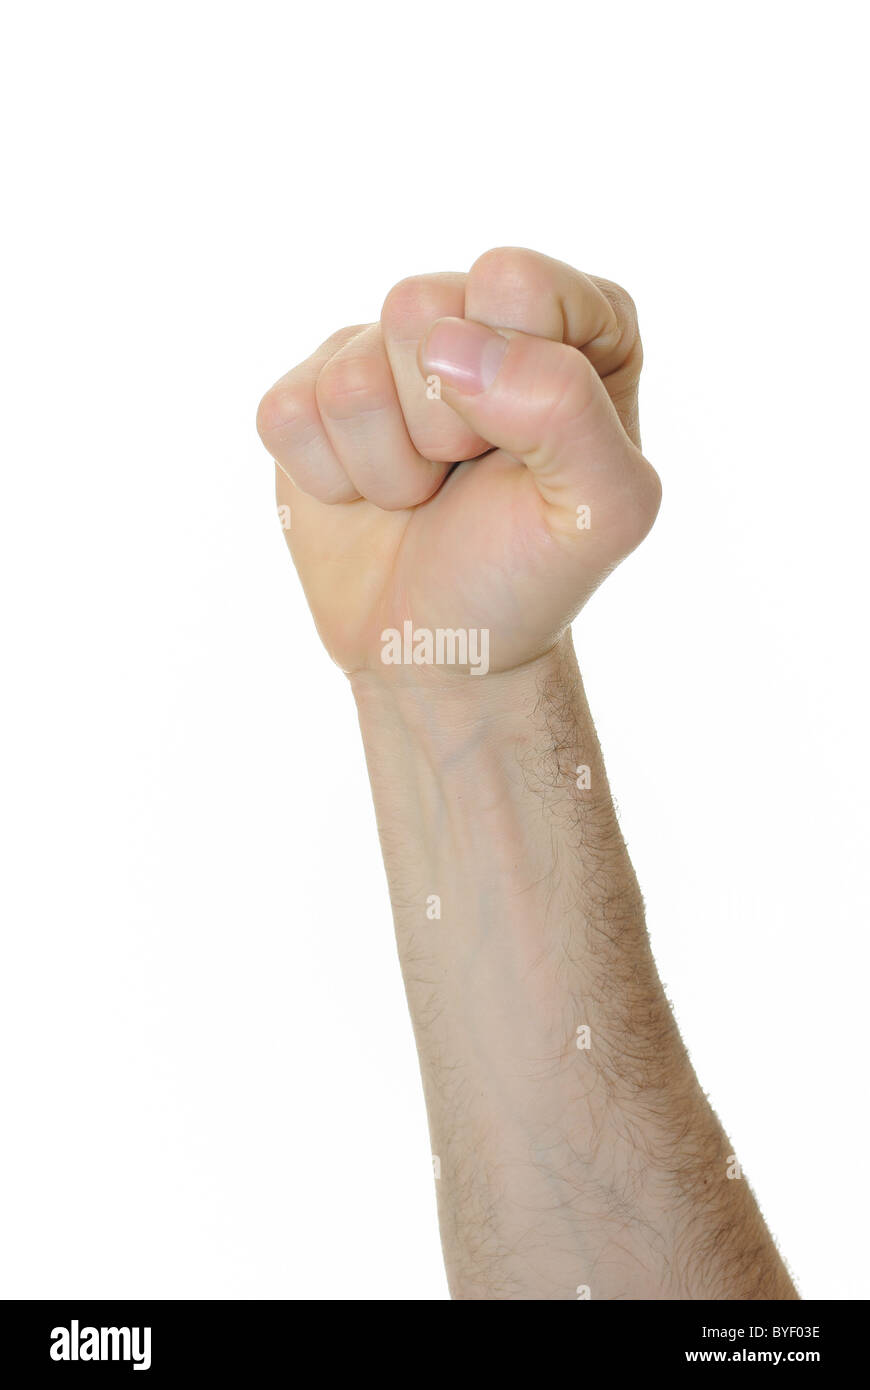 Powerful fist pump against a white background - Stock Image